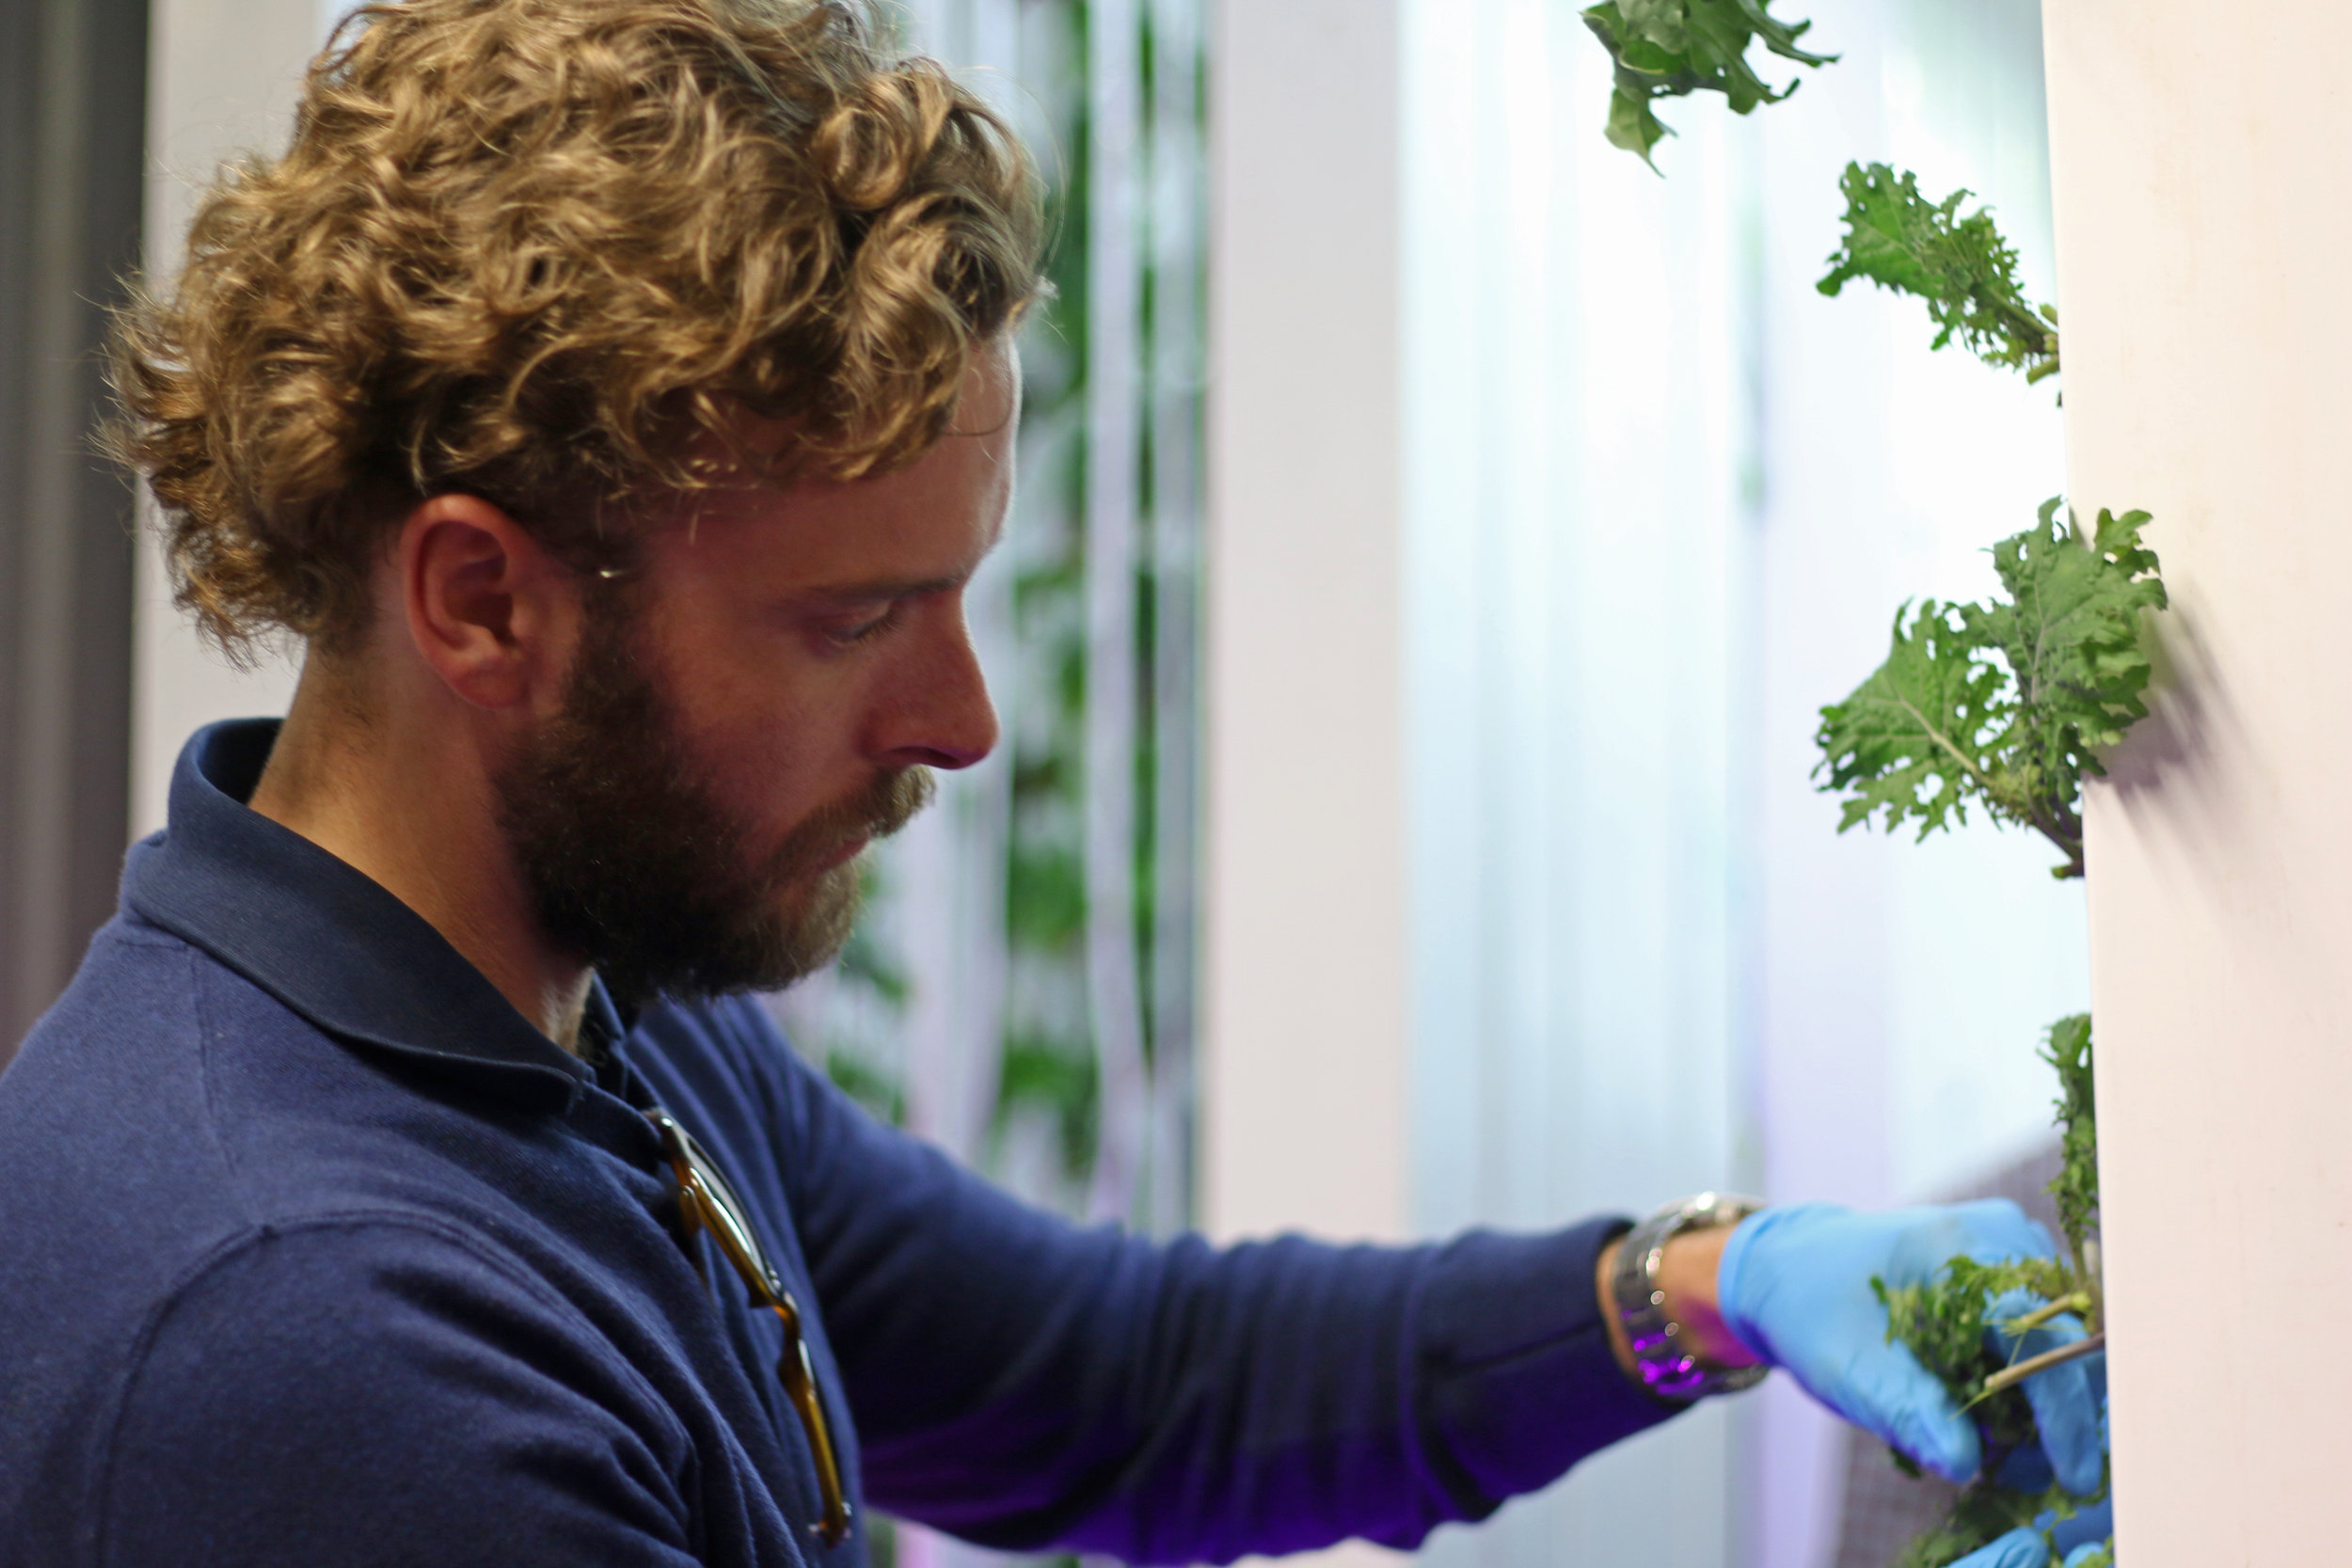 Andrew Checking on Kale Plants